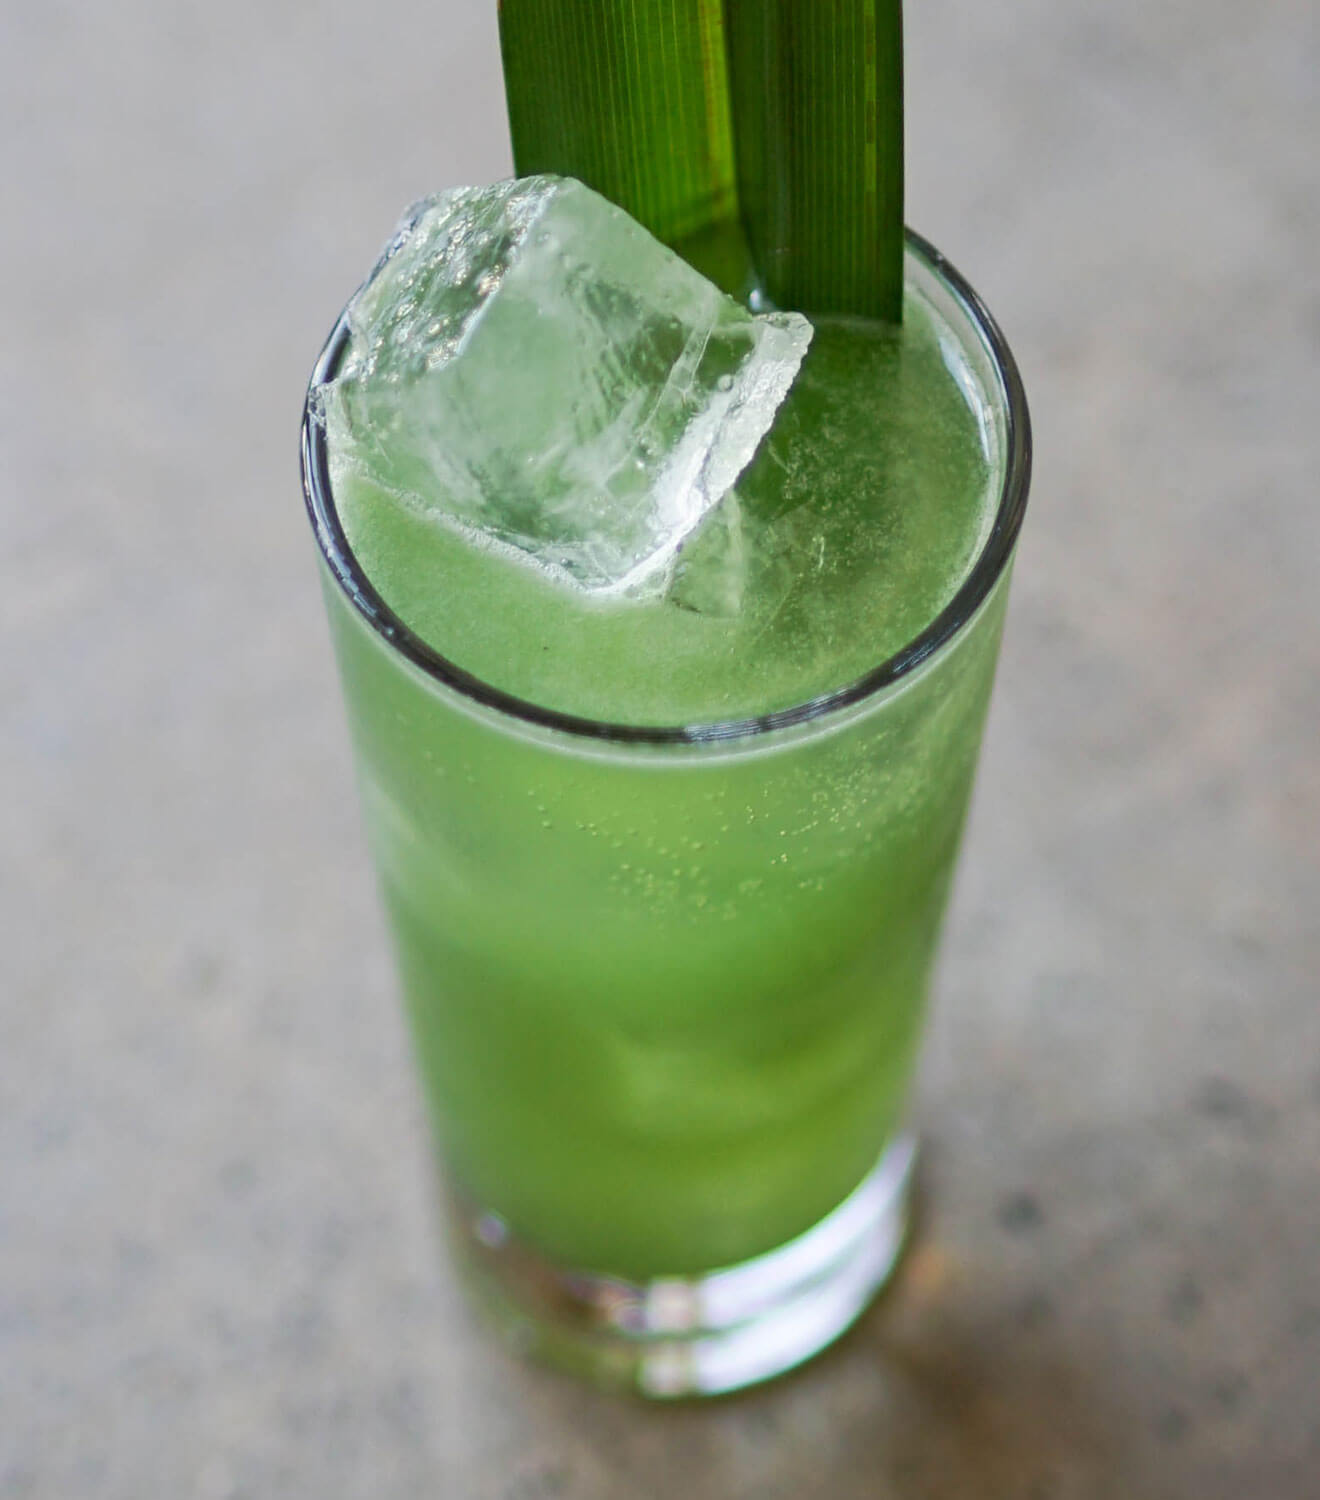 A&W Cocktail, green cocktail with large ice cubes